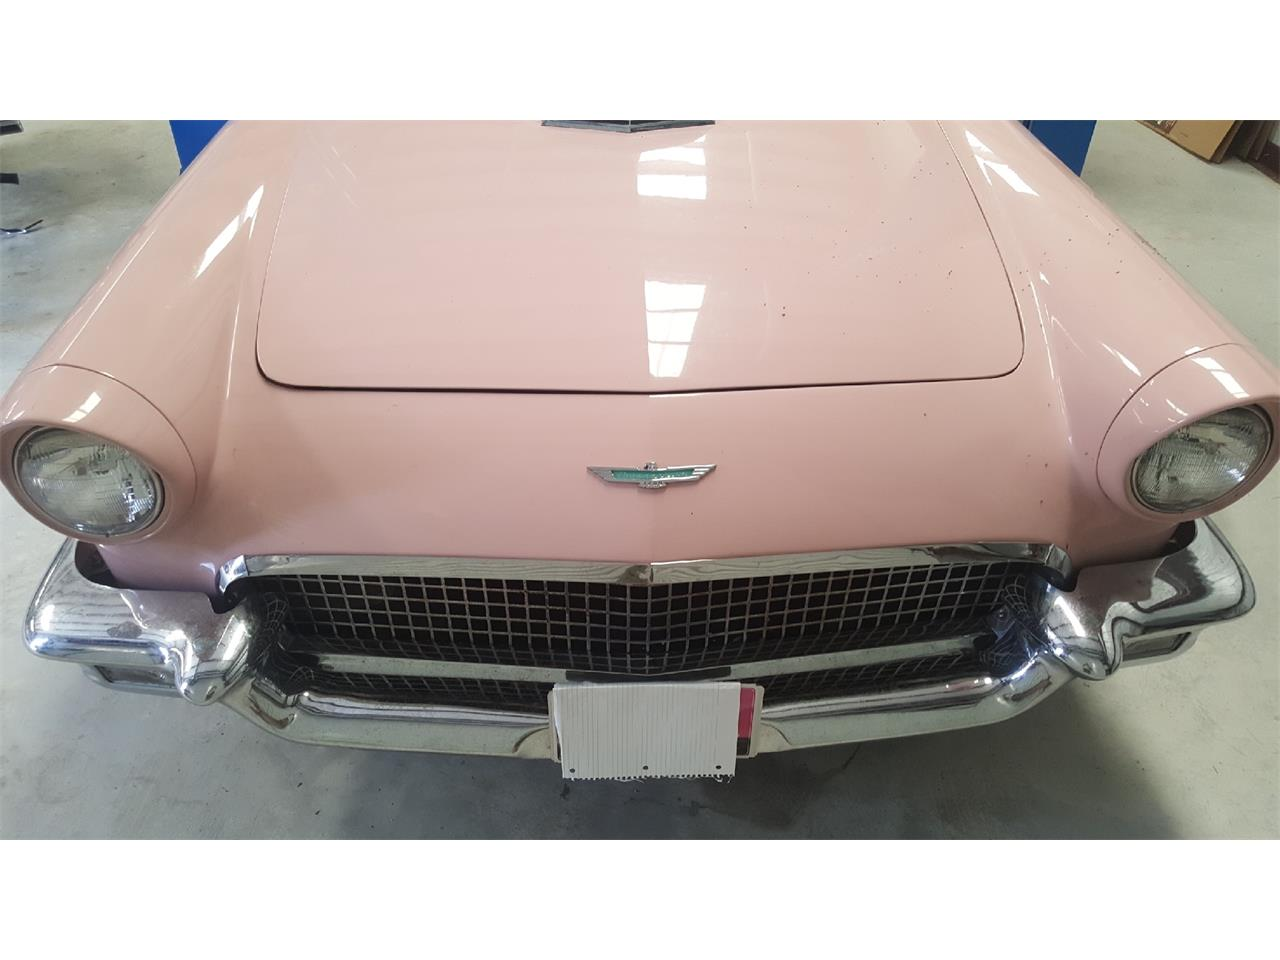 Large Picture of 1957 Ford Thunderbird - $25,500.00 Offered by a Private Seller - Q3Z0